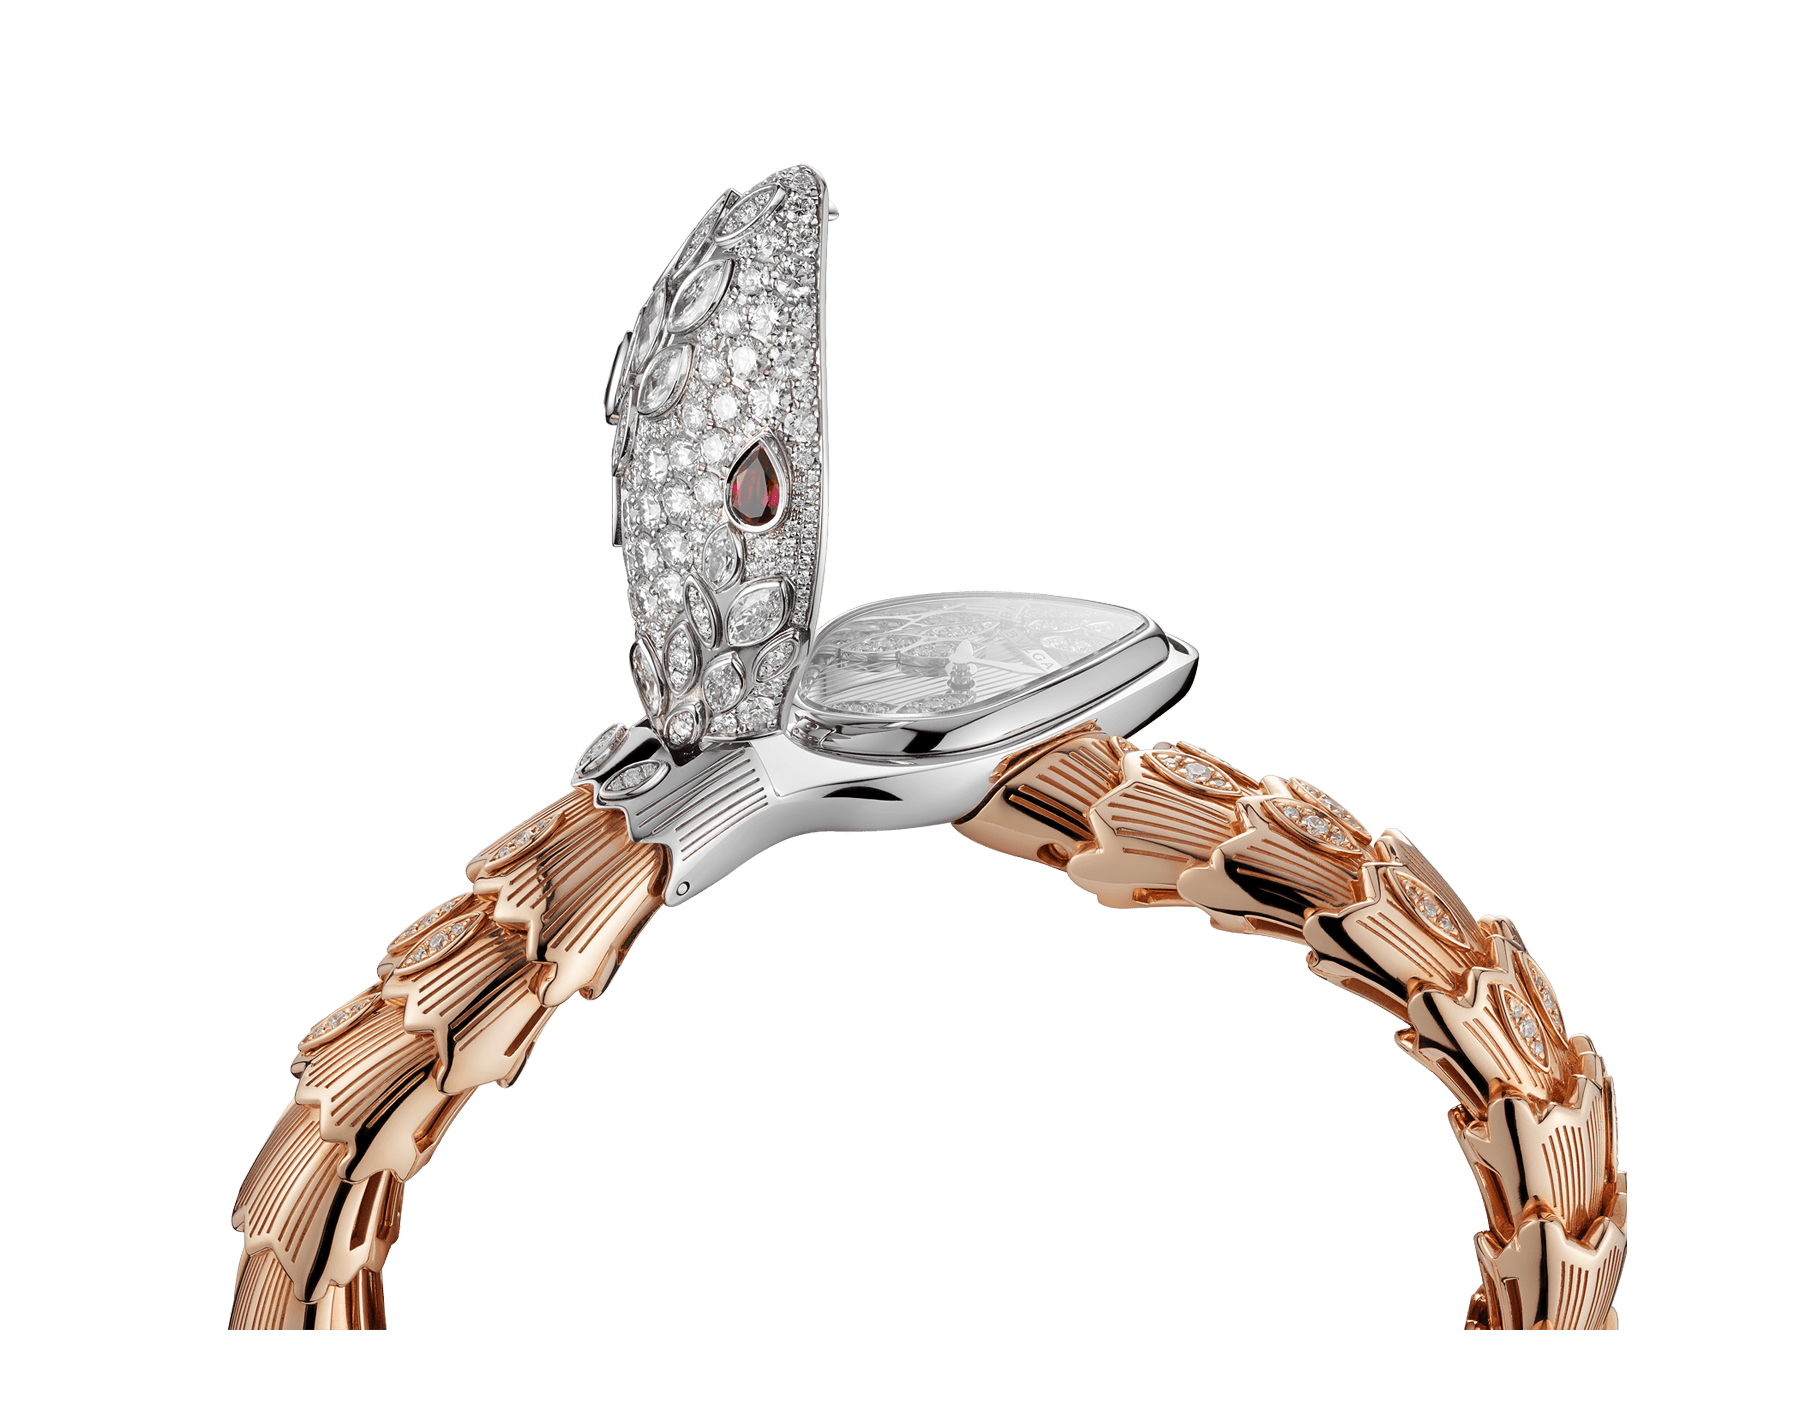 Serpenti Secret Watch with 18 kt white gold head set with brilliant cut and marquise cut diamonds and ruby eyes, 18 kt white gold case, 18 kt white gold dial set with brilliant cut diamonds, single spiral bracelet in 18 kt rose and white gold, set with brilliant cut diamonds. 102239 image 3